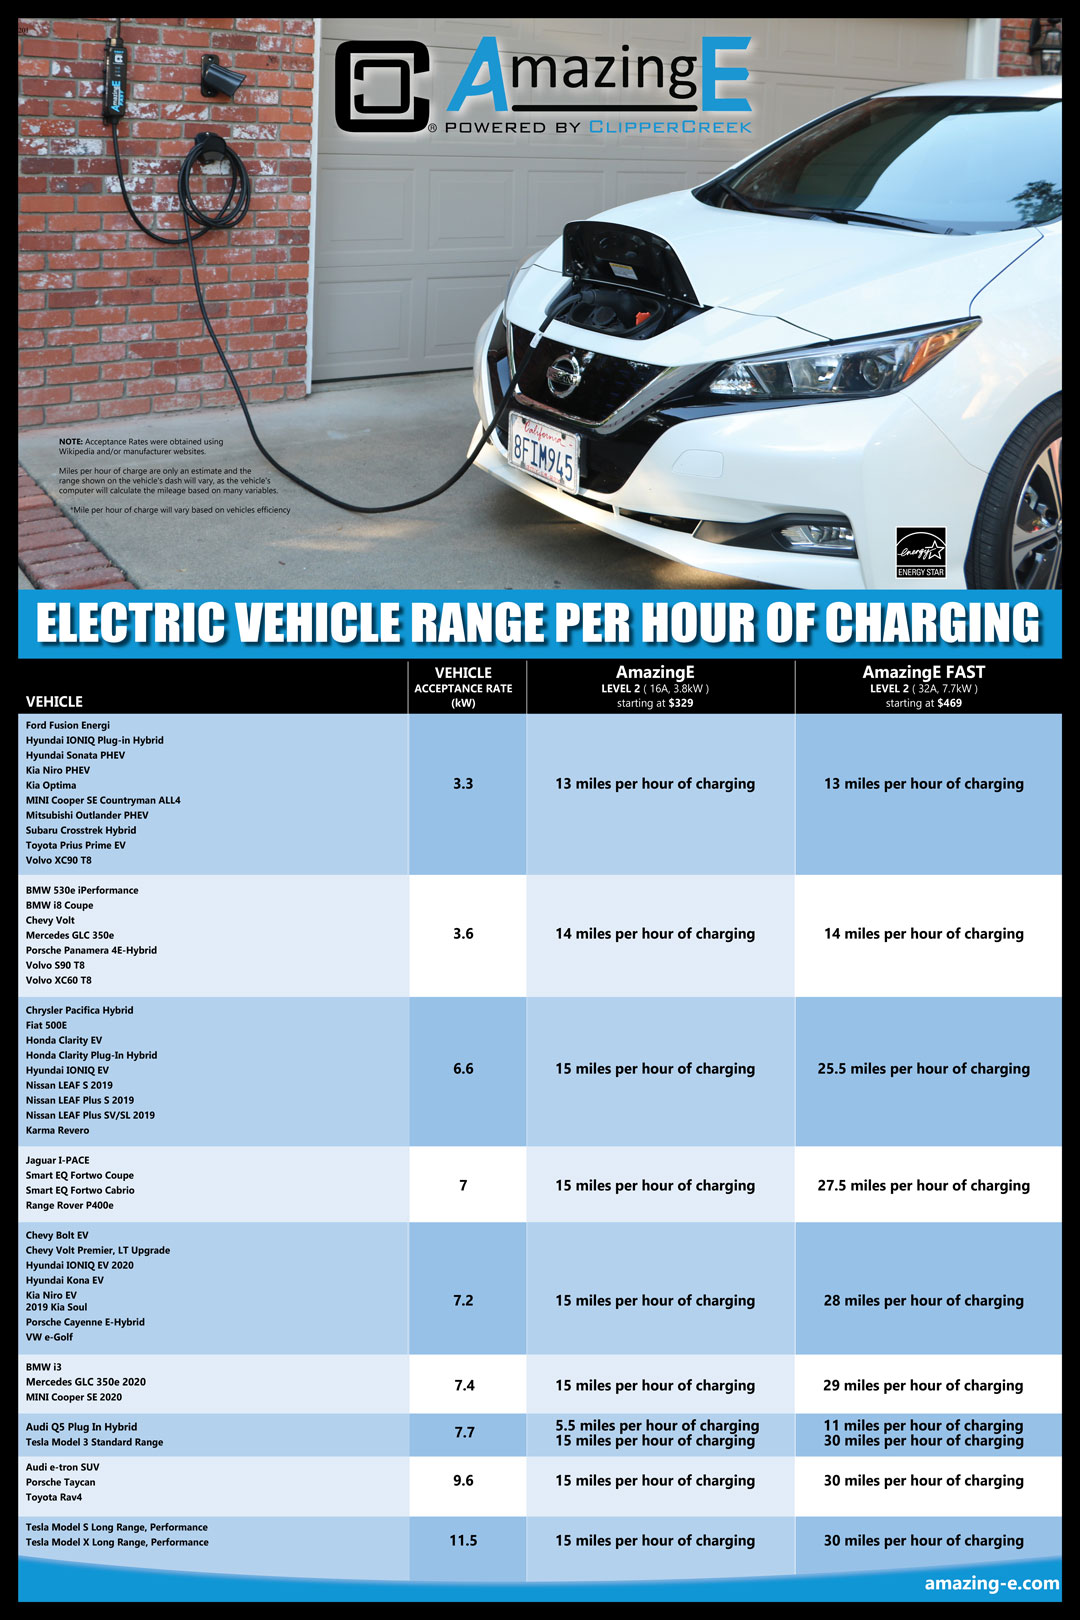 mileage per hour of charging chart